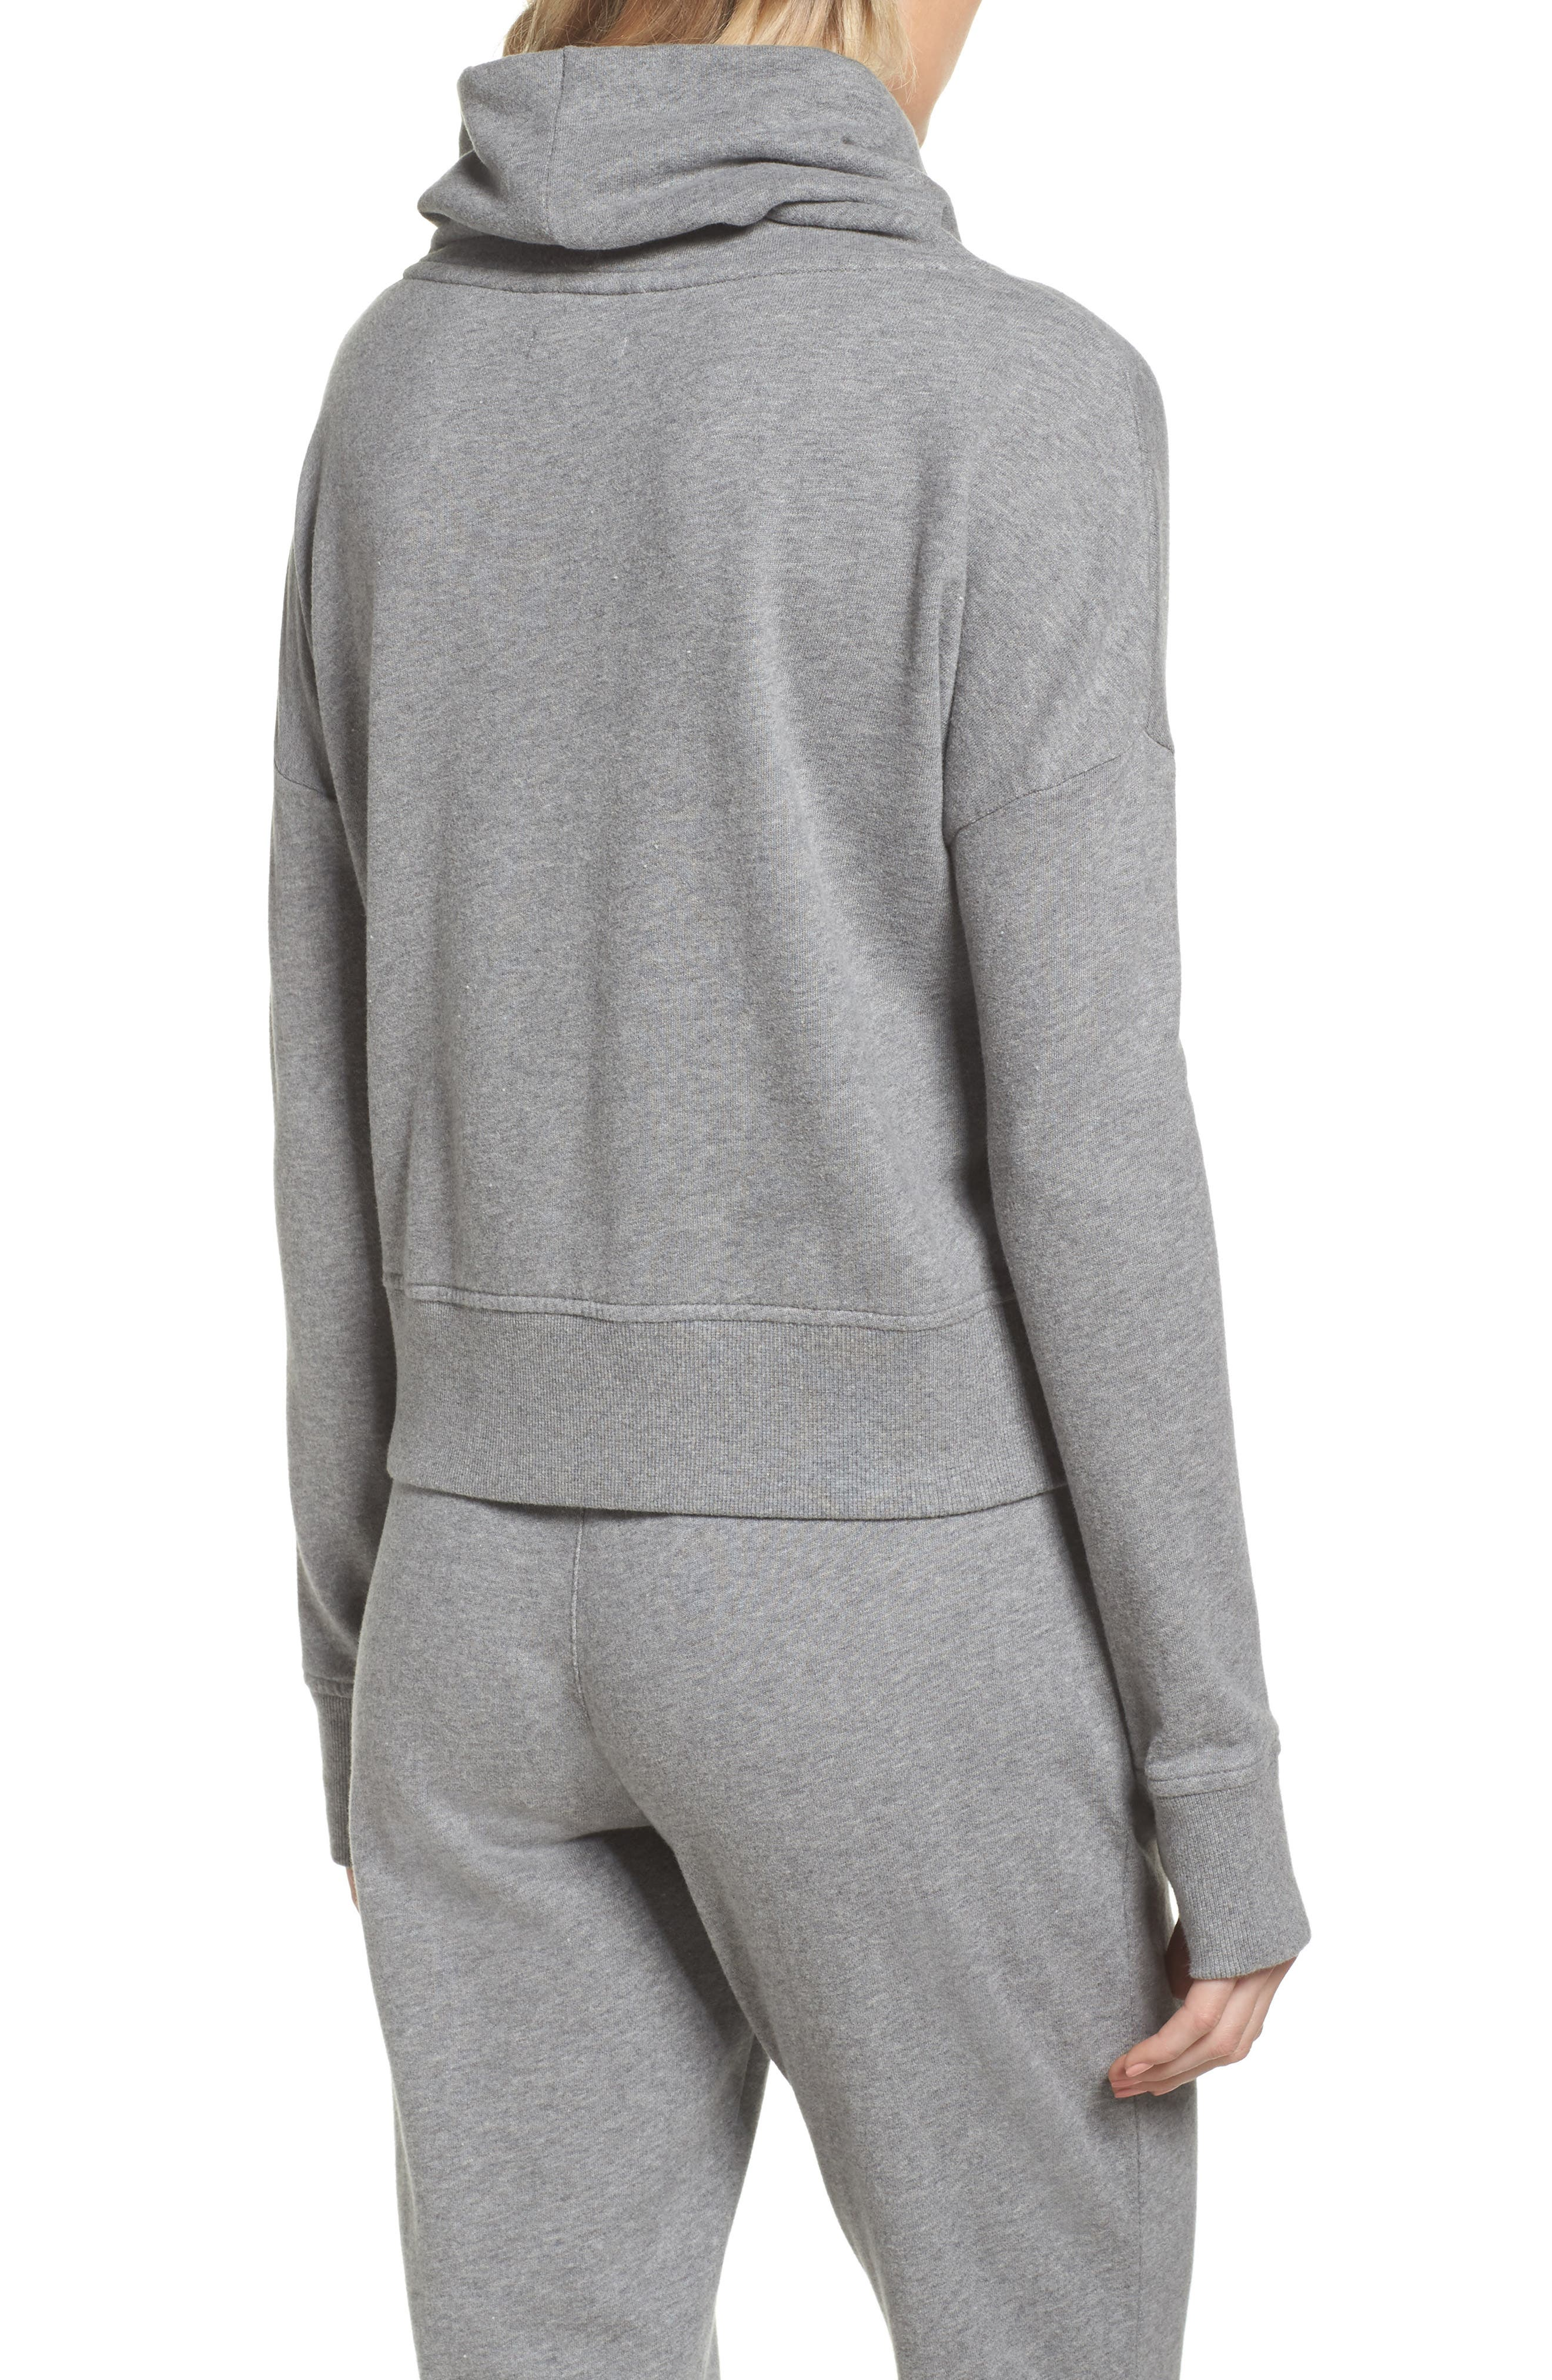 UGG<SUP>®</SUP>, Miya Funnel Neck Sweatshirt, Alternate thumbnail 2, color, GREY HEATHER